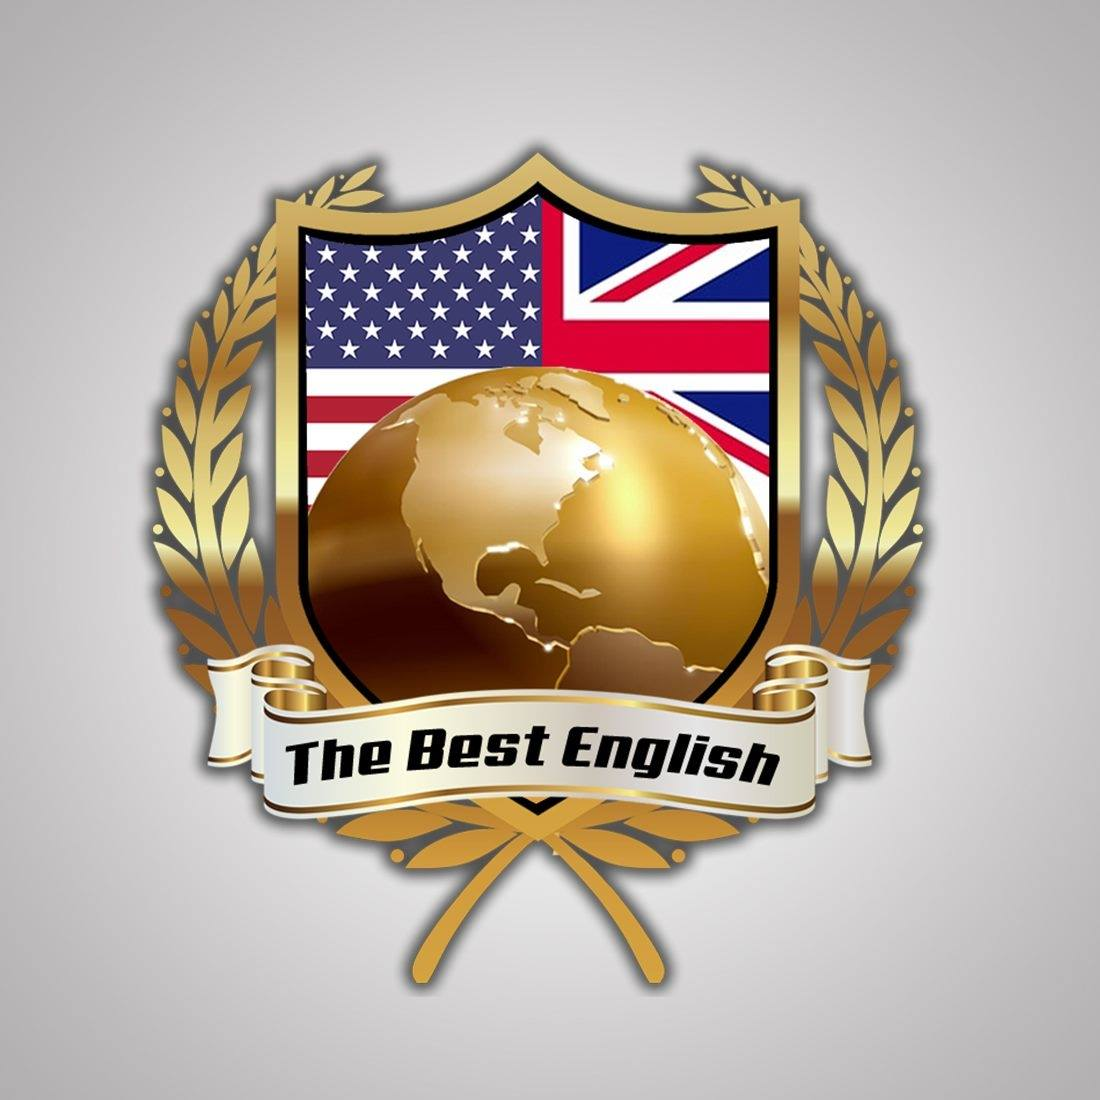 THE BEST ENGLISH